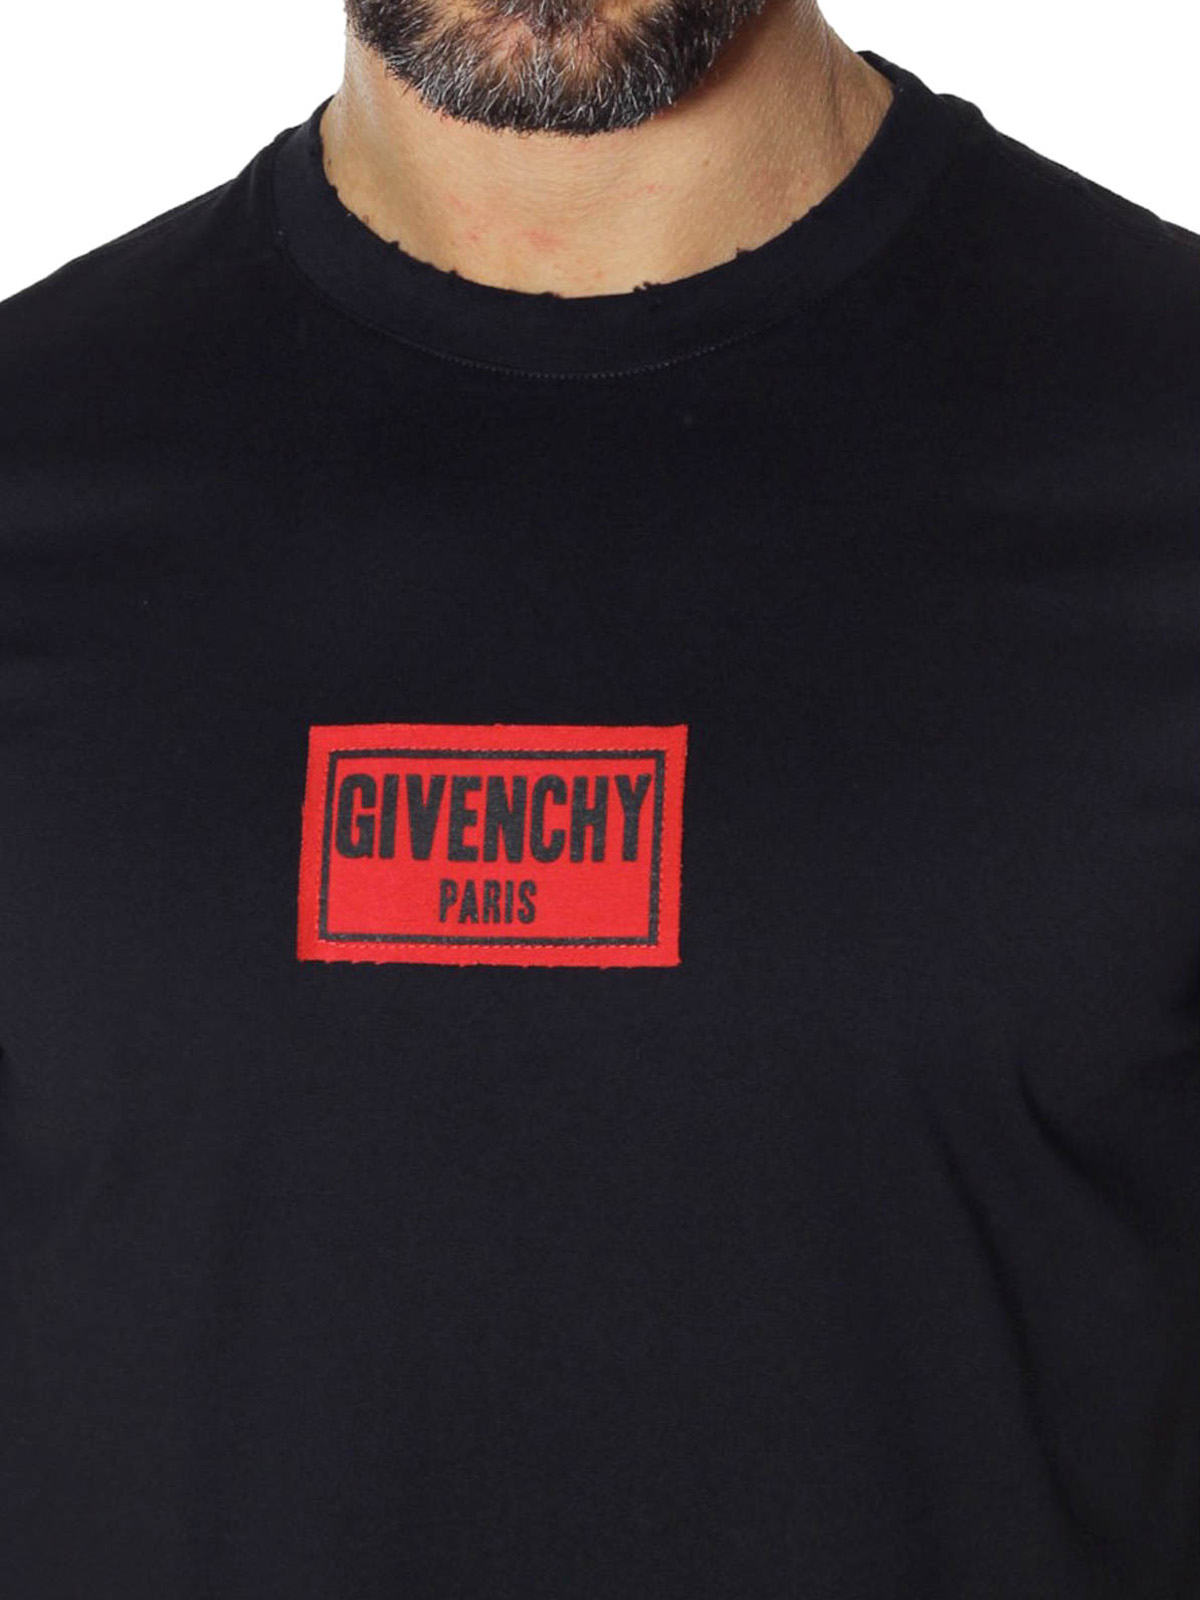 48c613a305778 Givenchy - Logo red patch black T-shirt - t-shirts - BM701W3Y03 001